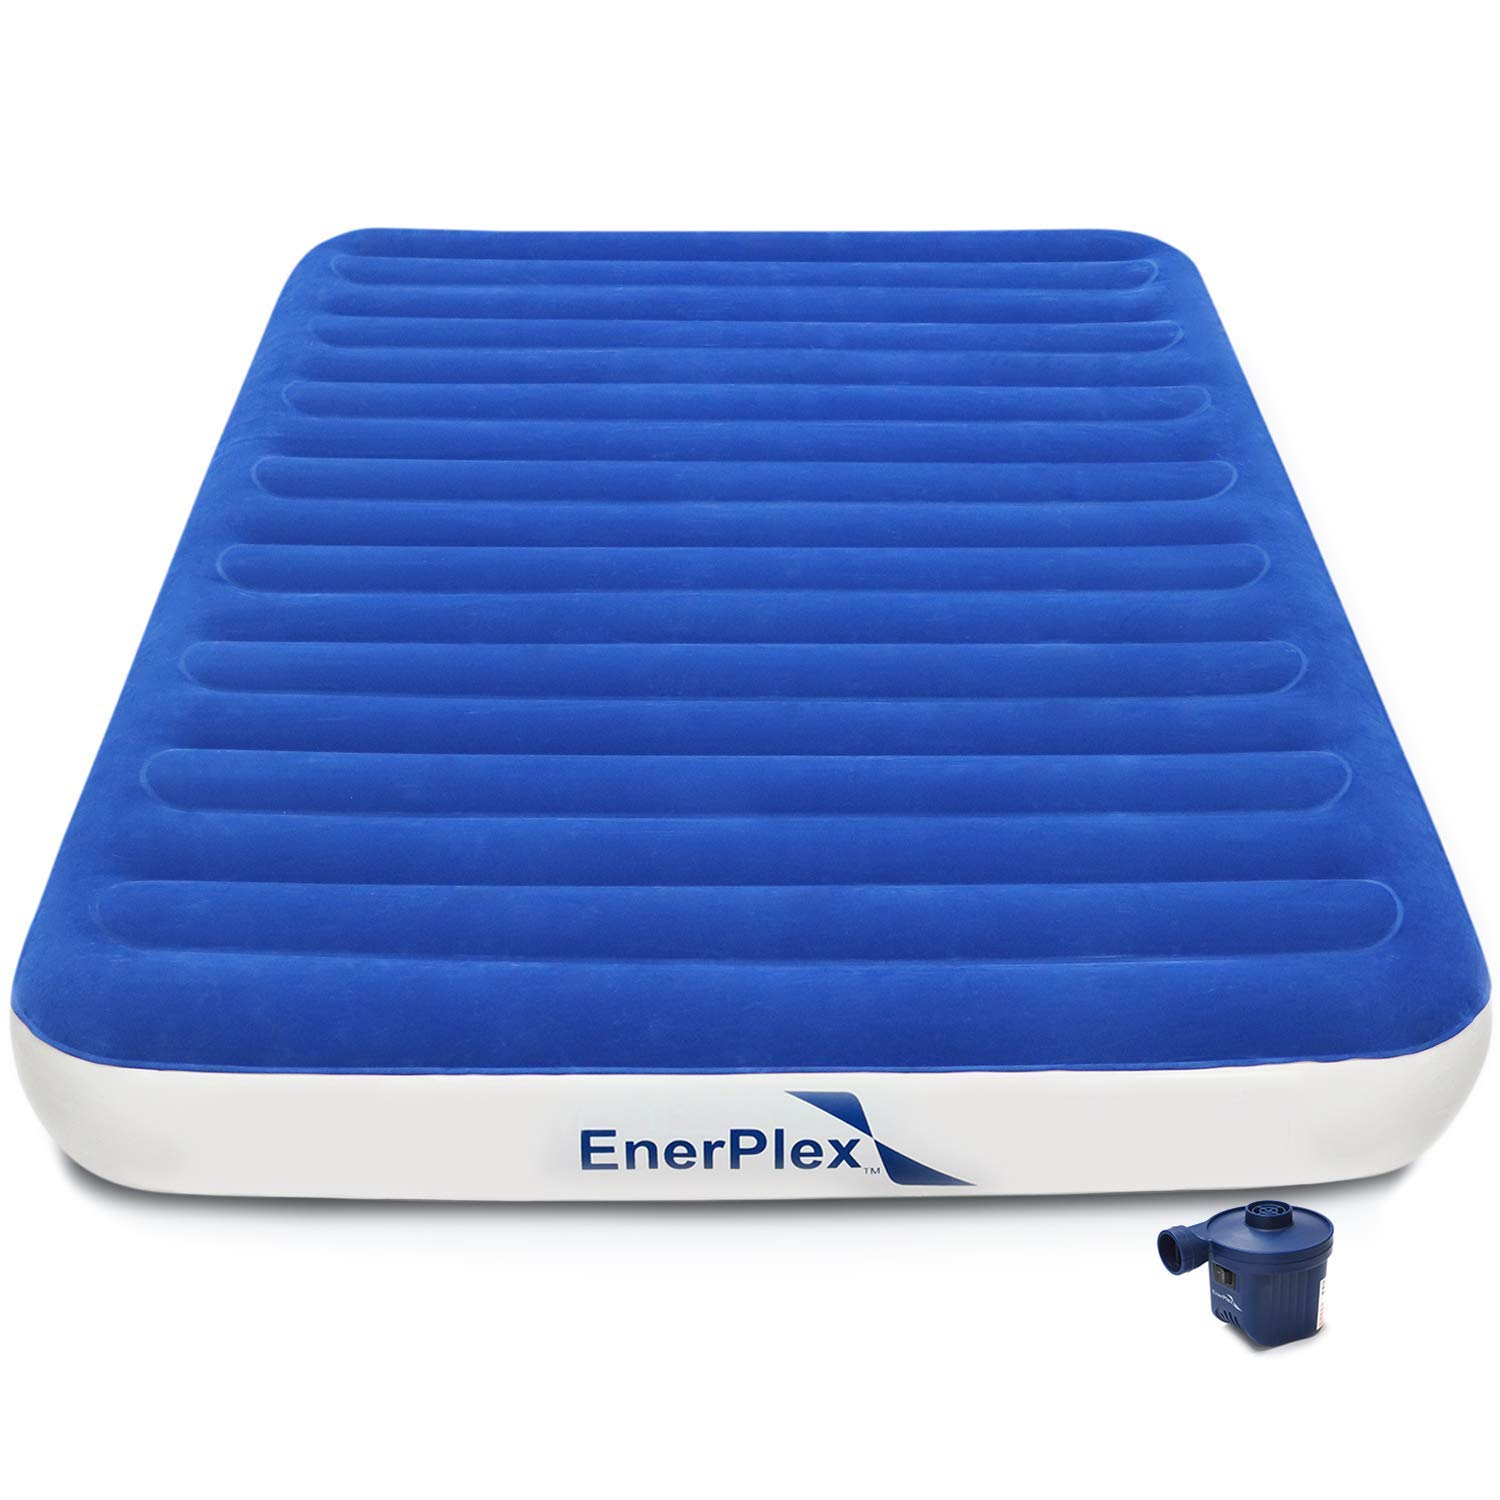 EnerPlex 2019 Camping Luxury Queen Size Air Mattress Camping Queen Airbed with High Speed Wireless Pump Single High Inflatable Blow Up Bed for Home Camping Travel 2-Year Warranty by EnerPlex (Image #1)